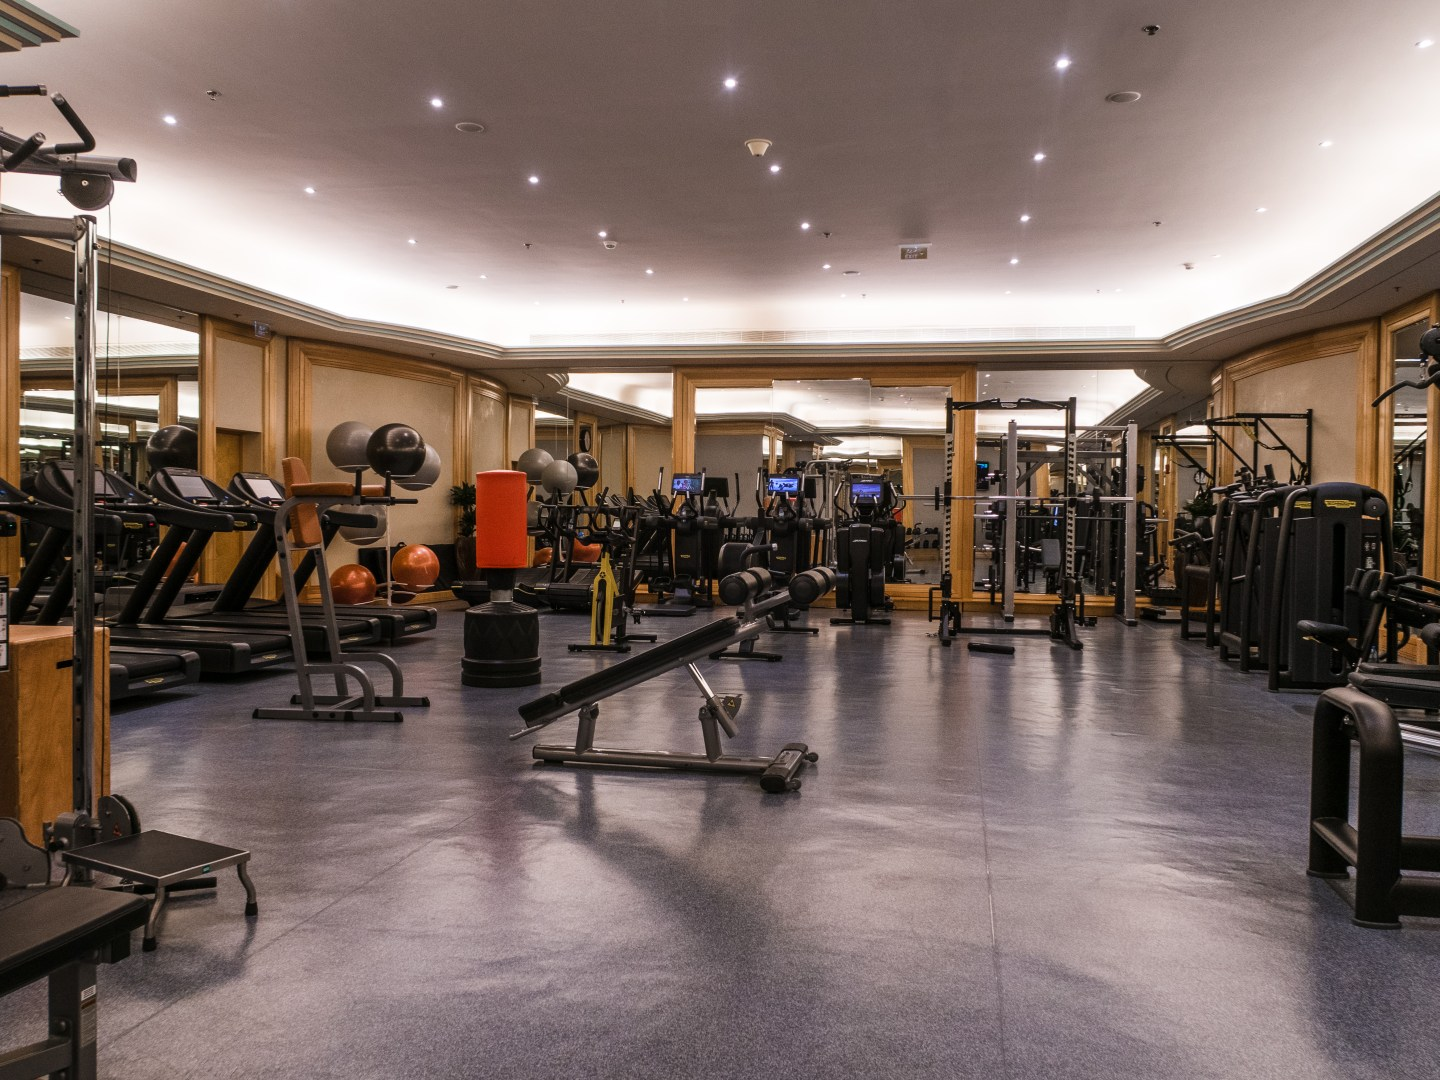 Gym at Ritz Carlton in Riyadh Saudi Arabia